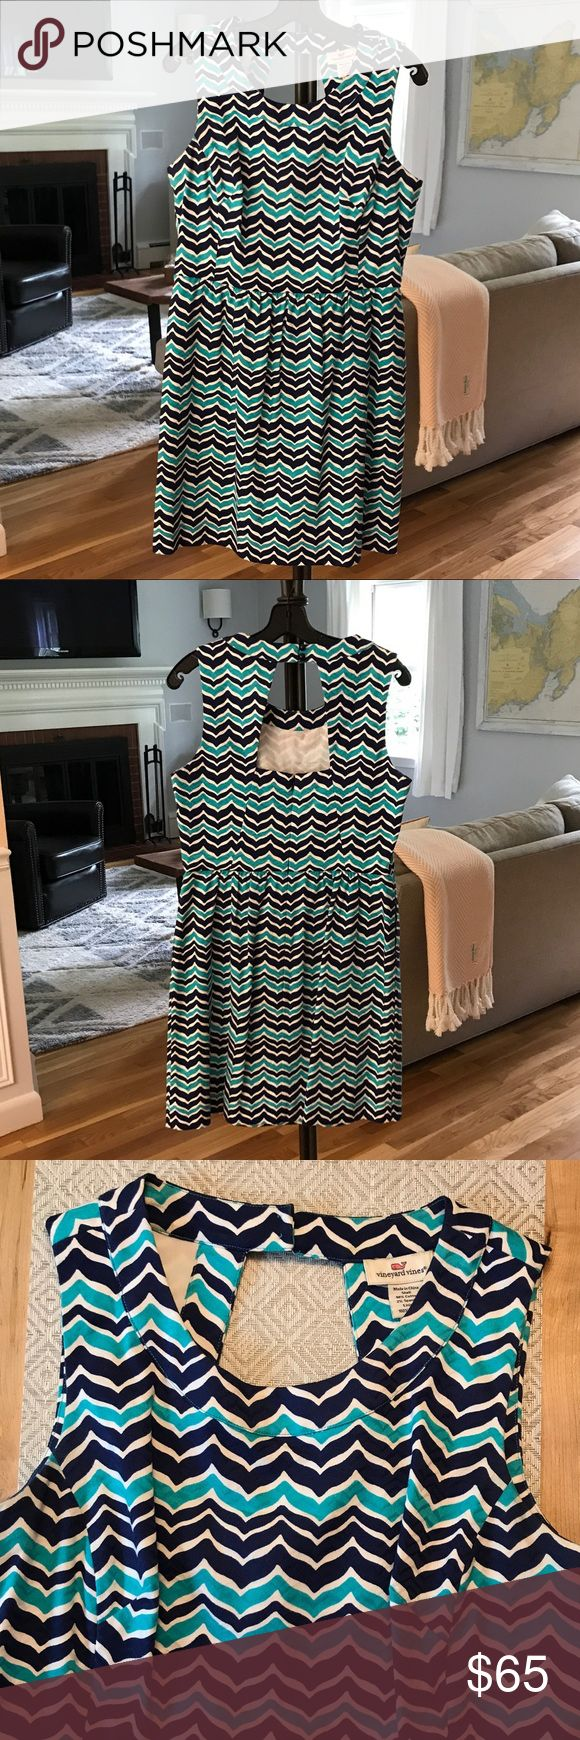 Vineyard Vines Whales Tail Print Dress All over navy and turquoise whales tail print. Flattering fitted upper bodice with a-line skirt. Side hem pockets. Back cutout detail with two button clasp at back of neck. Great condition! Vineyard Vines Dresses